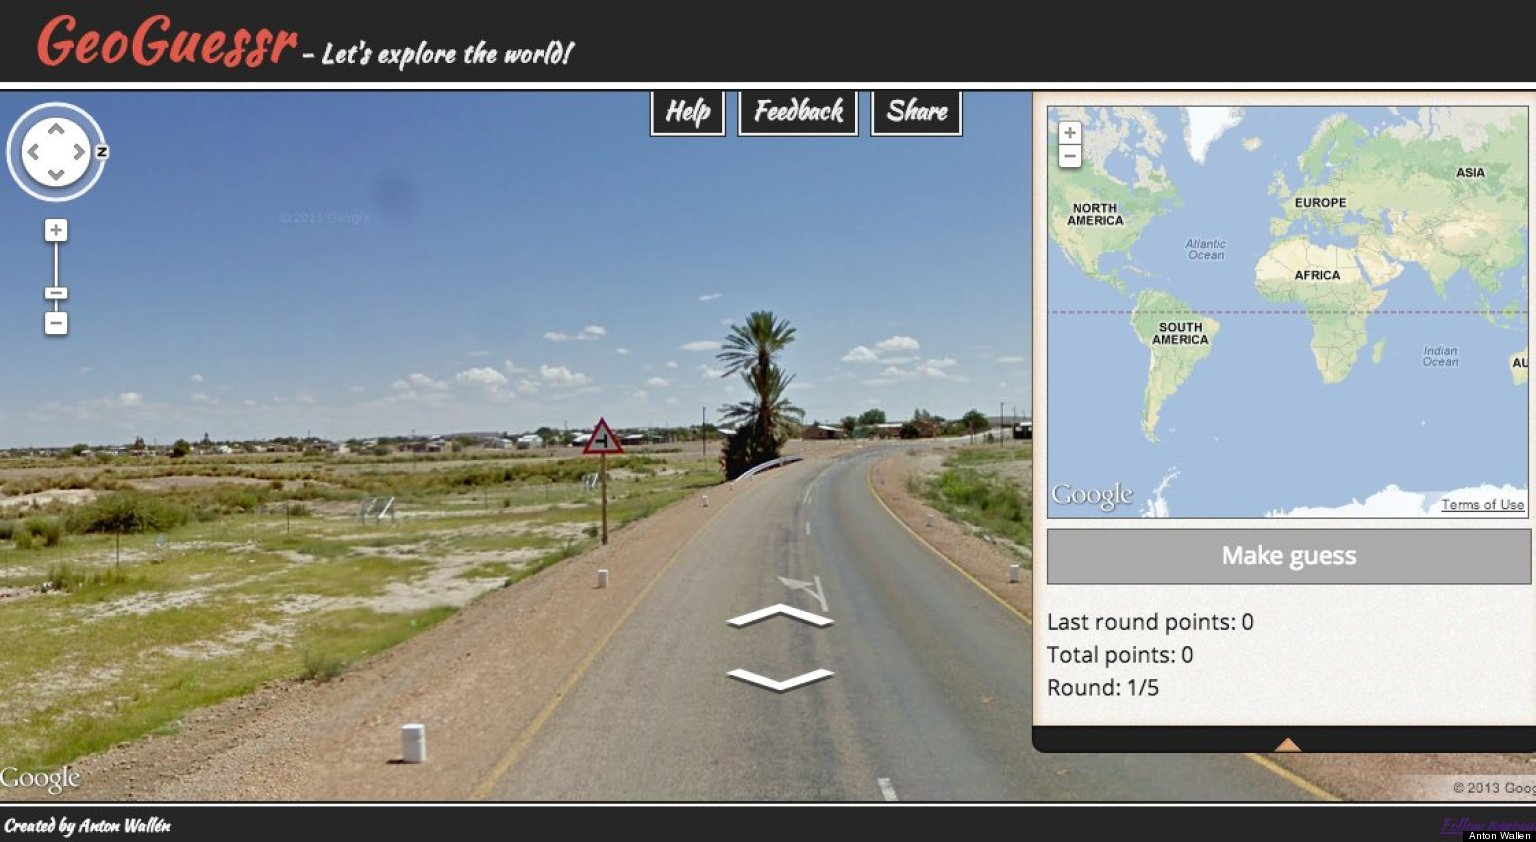 This is a website of Geoguessr